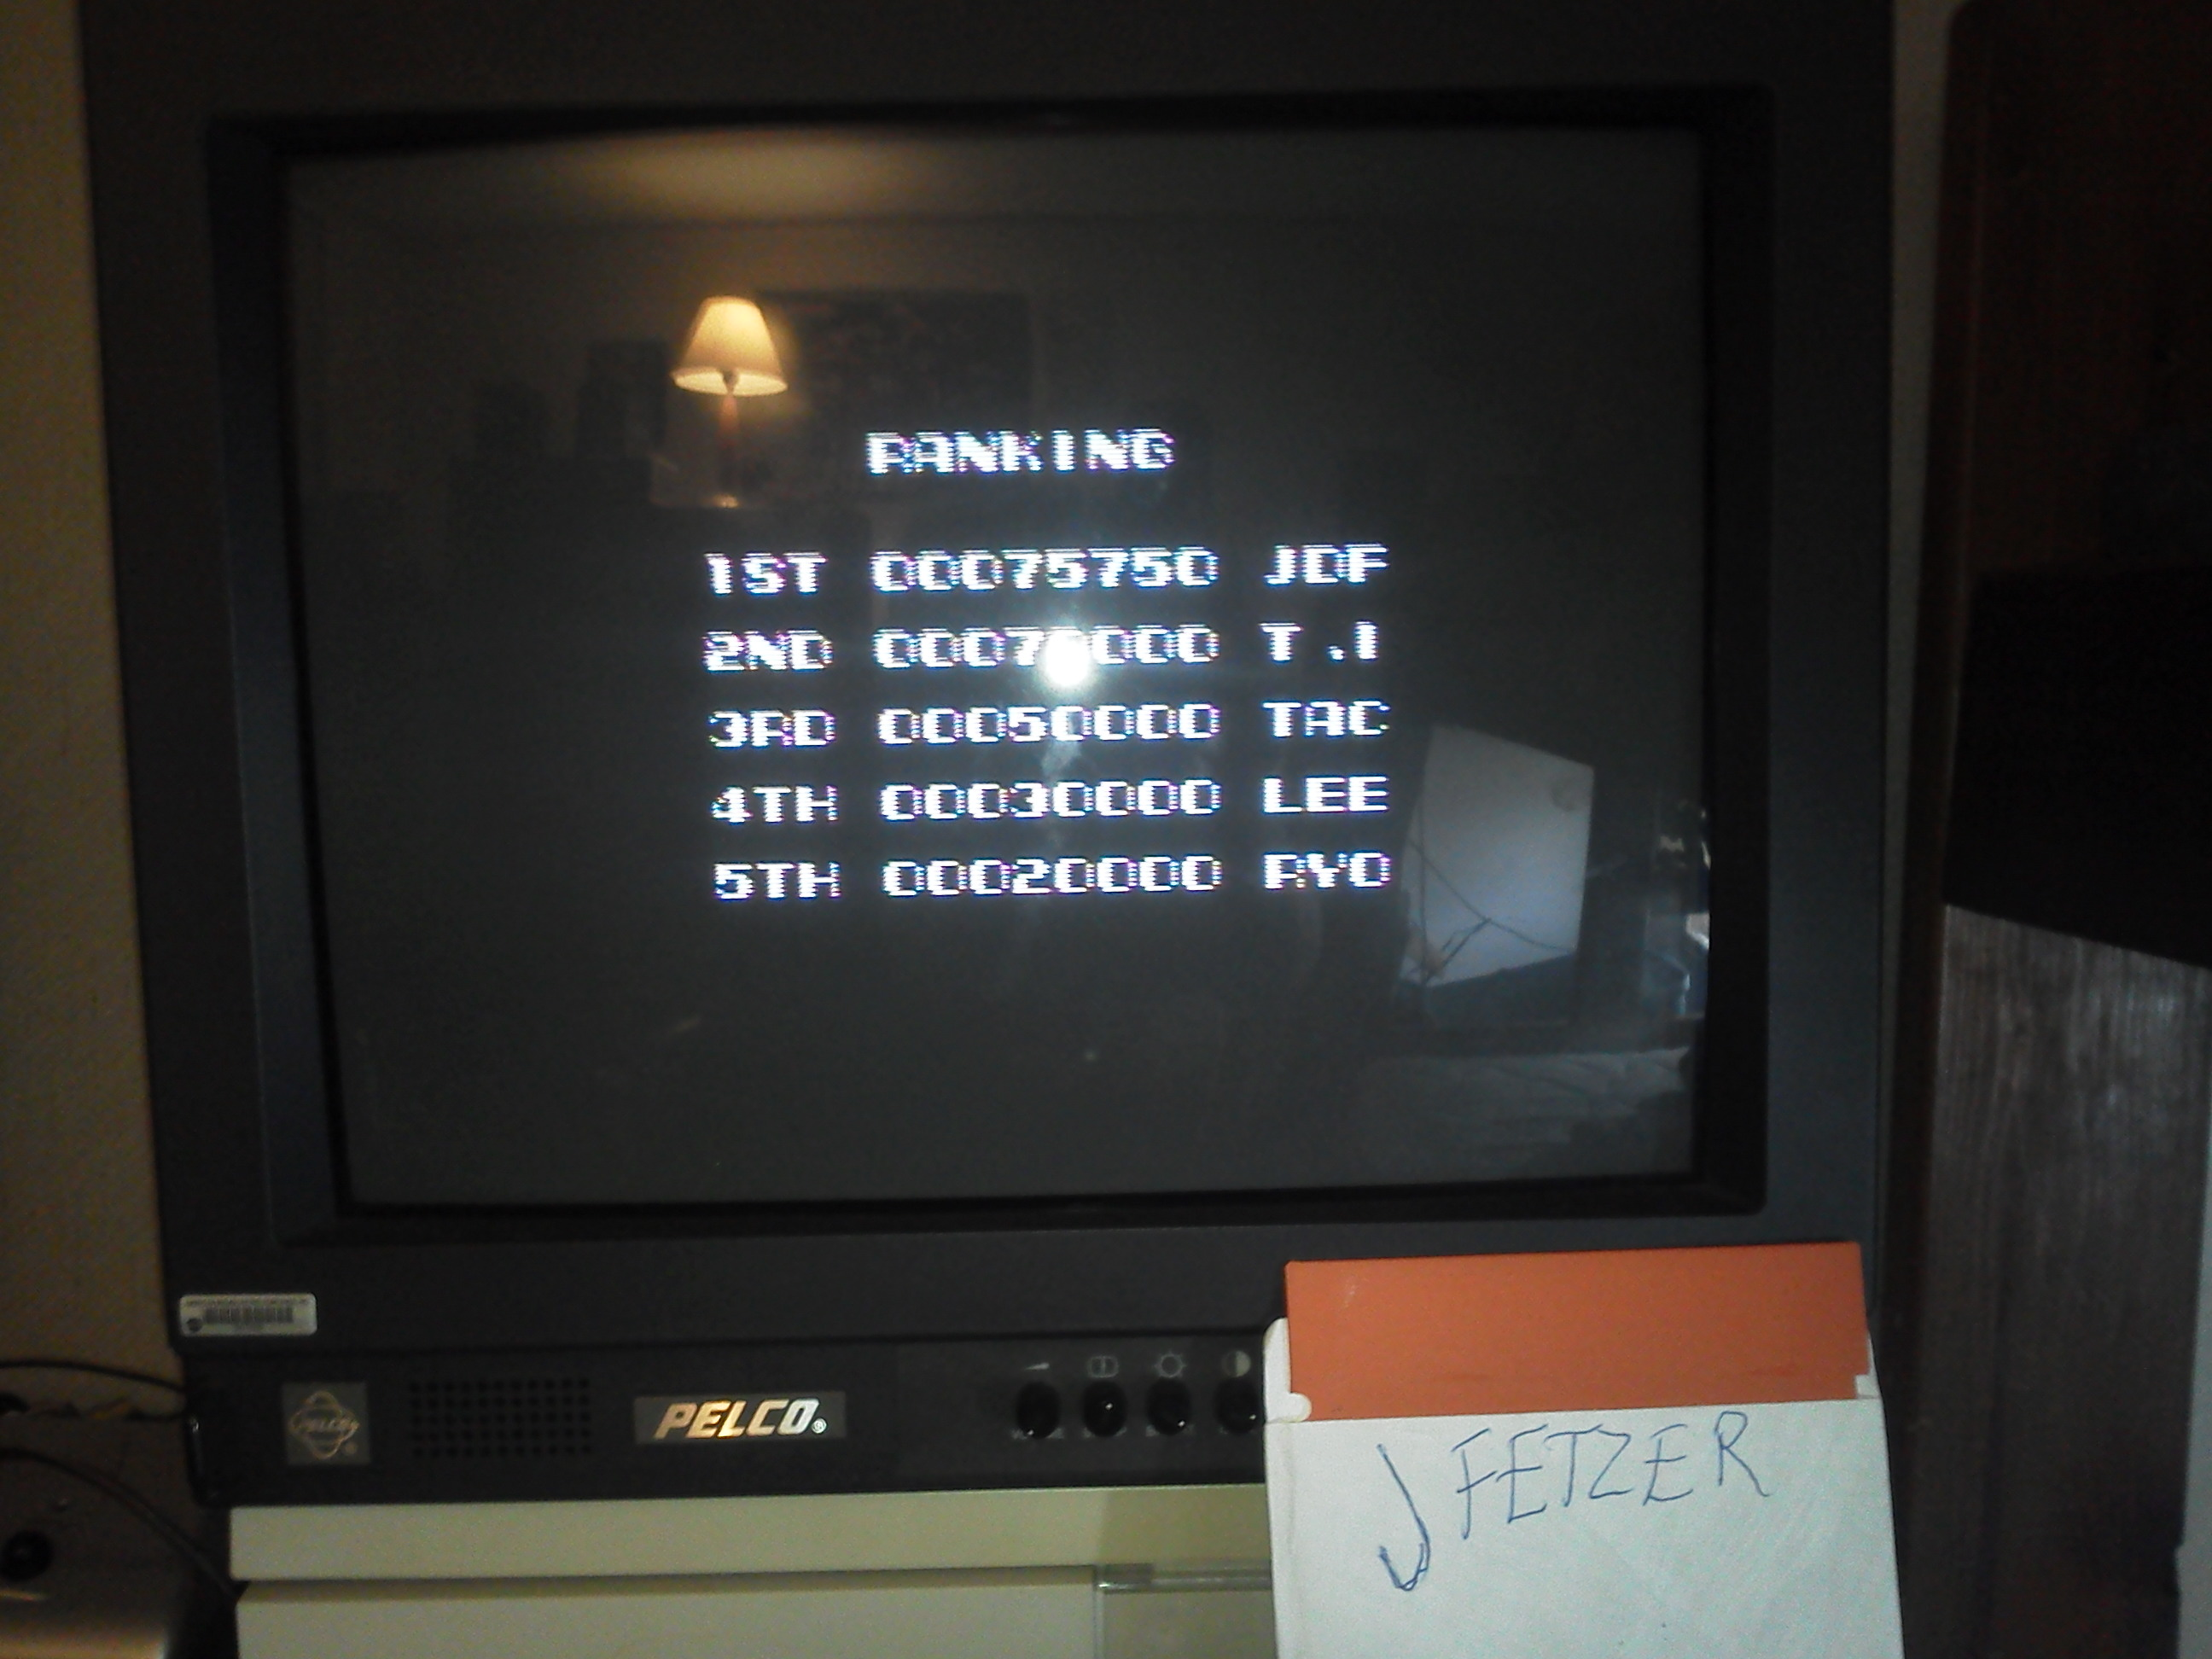 jfetzer: Penguin kun Wars (NES/Famicom) 75,750 points on 2015-01-18 13:04:46